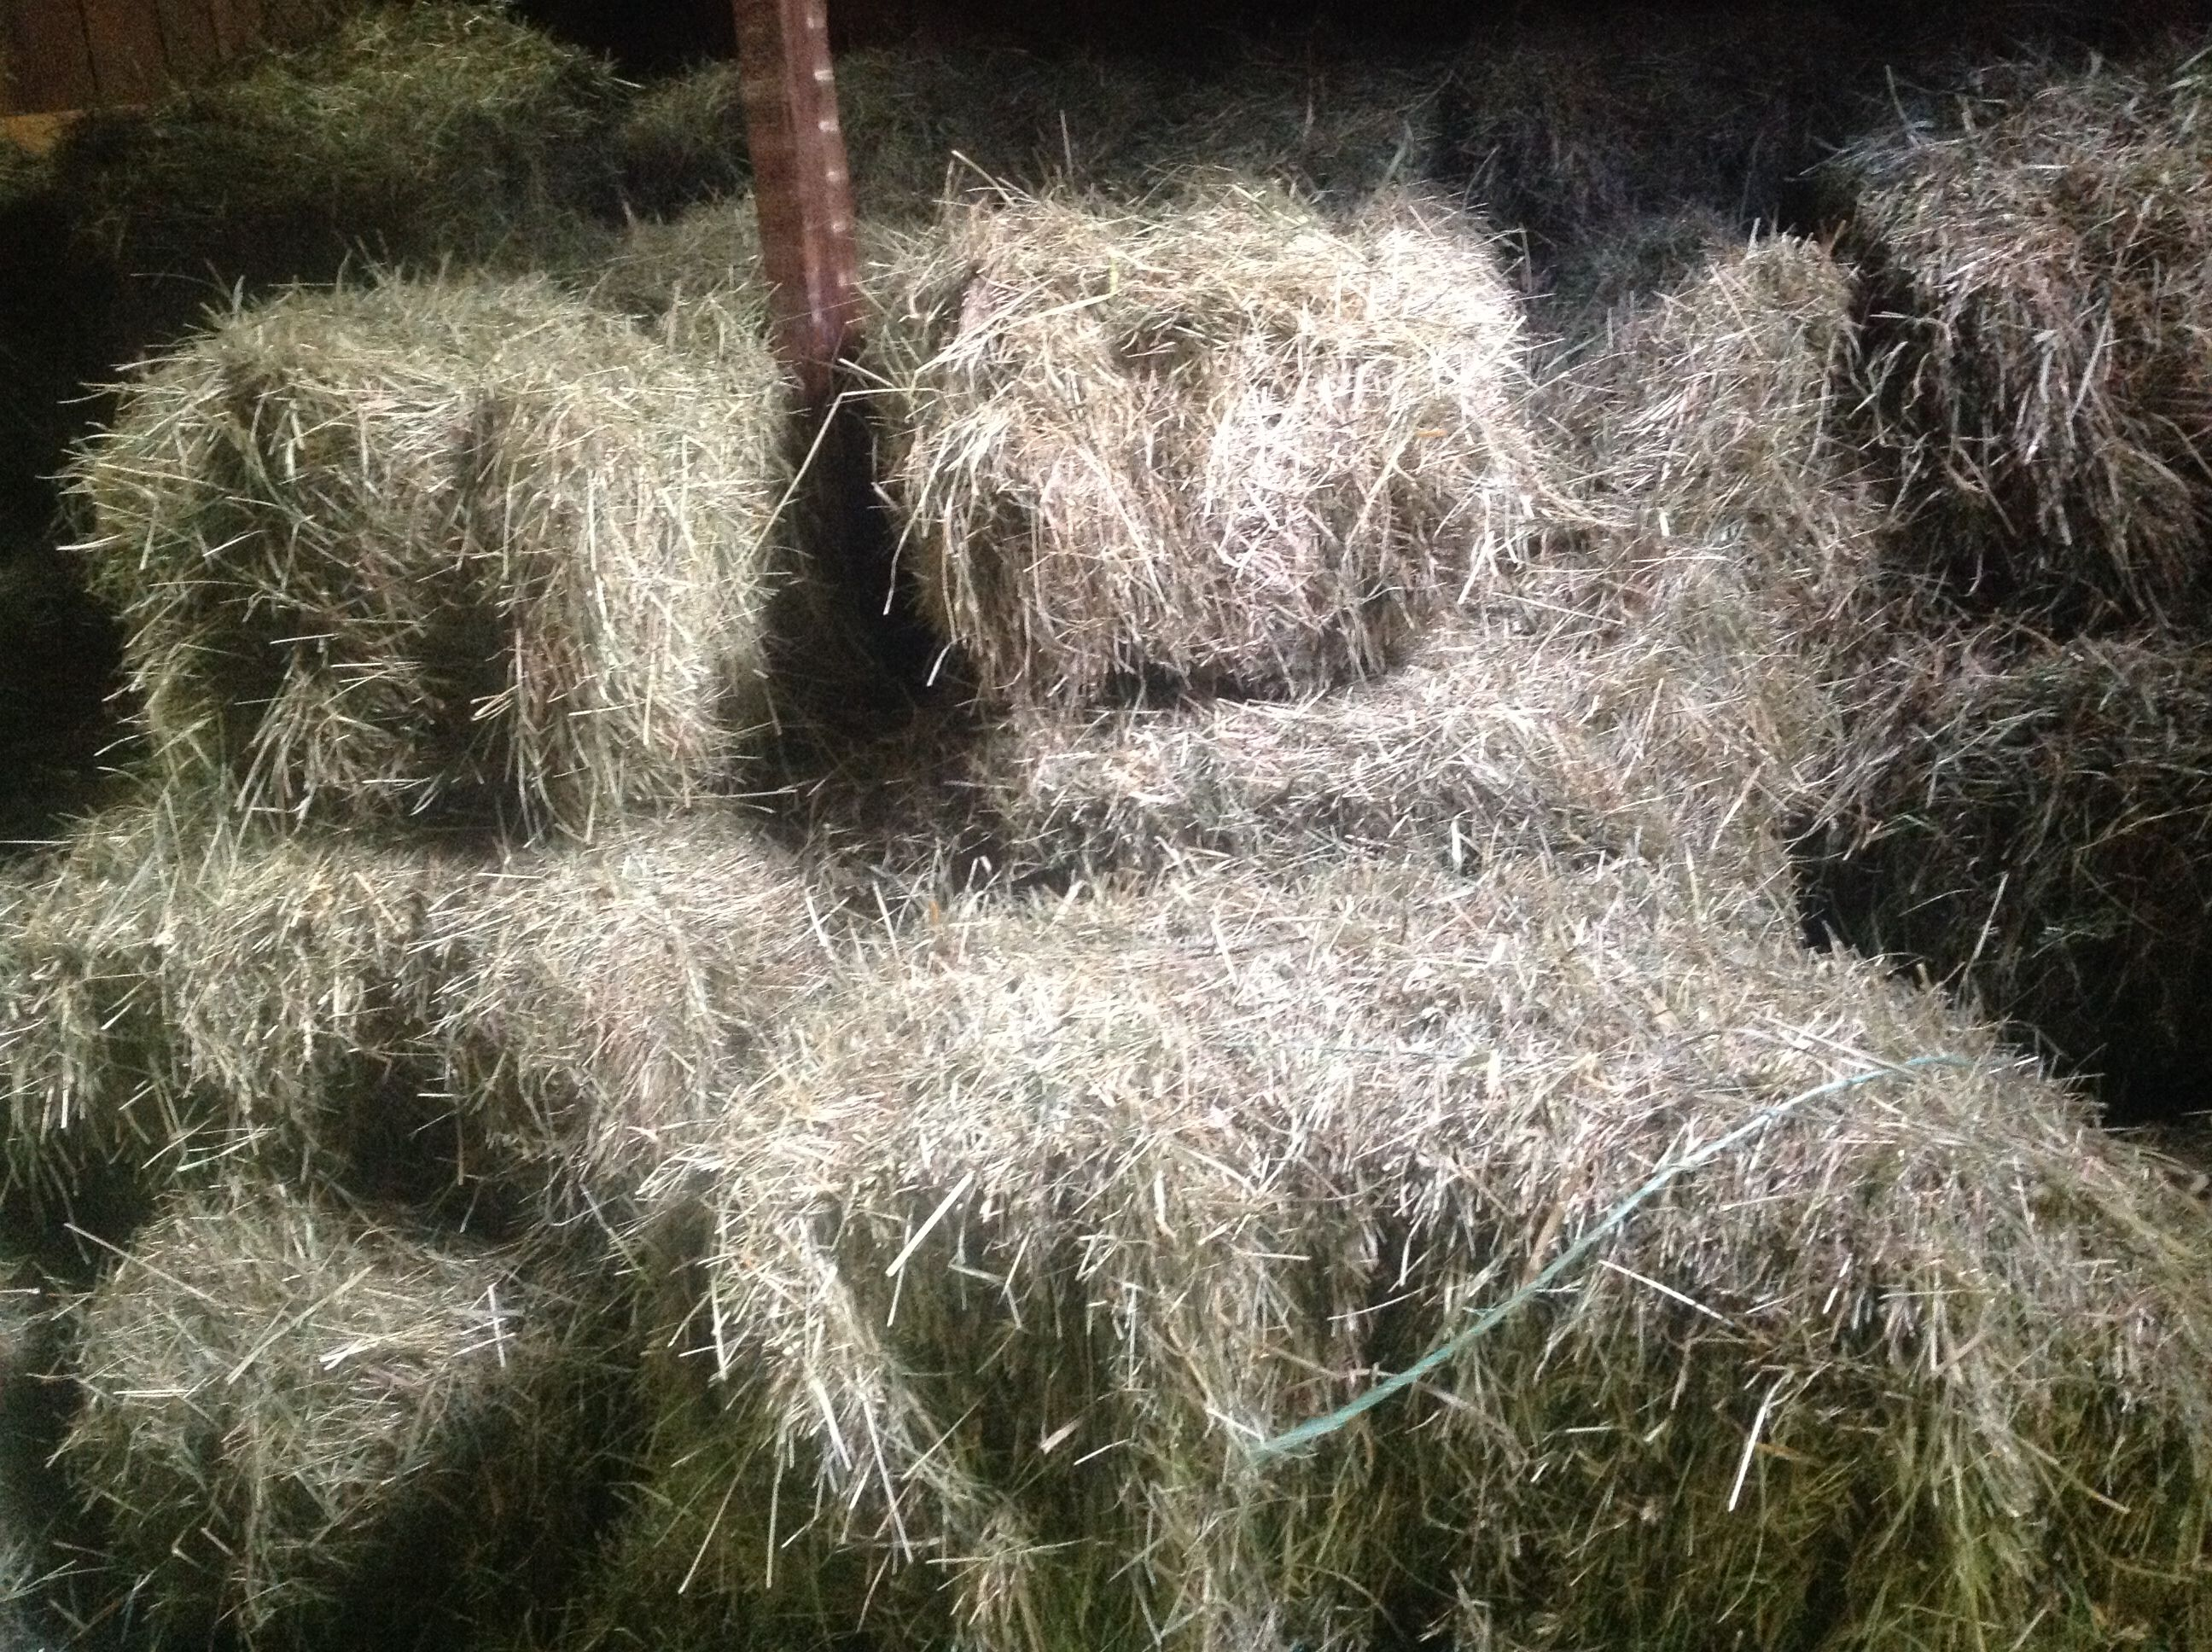 hay in a wooden manger - Google Search